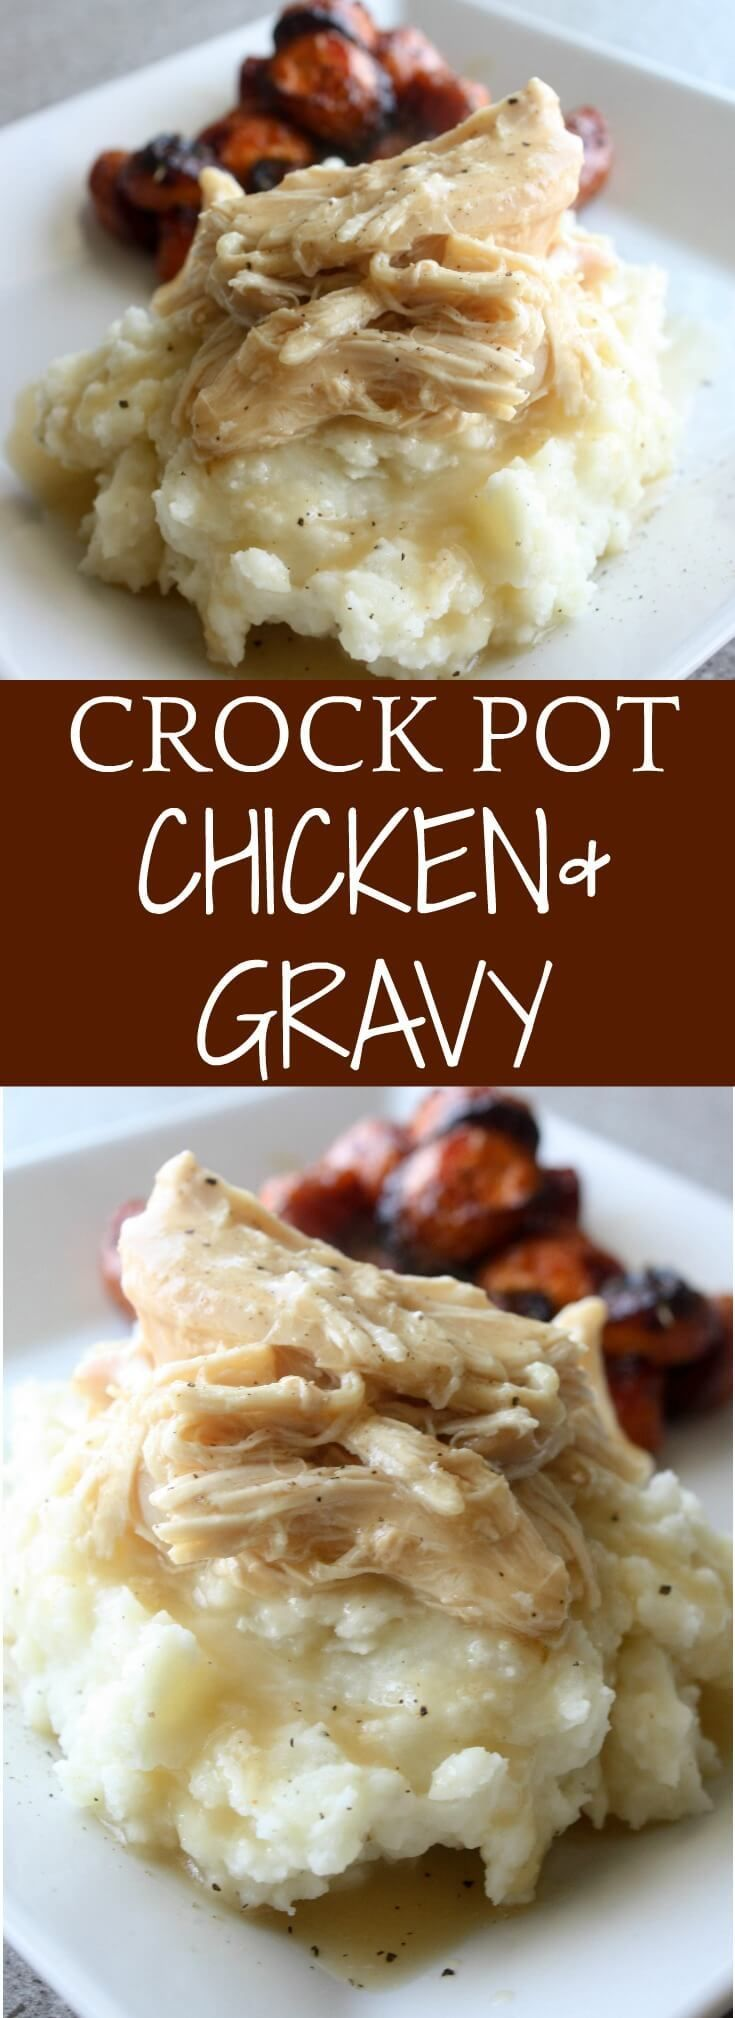 recipe: chicken and gravy over mashed potatoes [33]